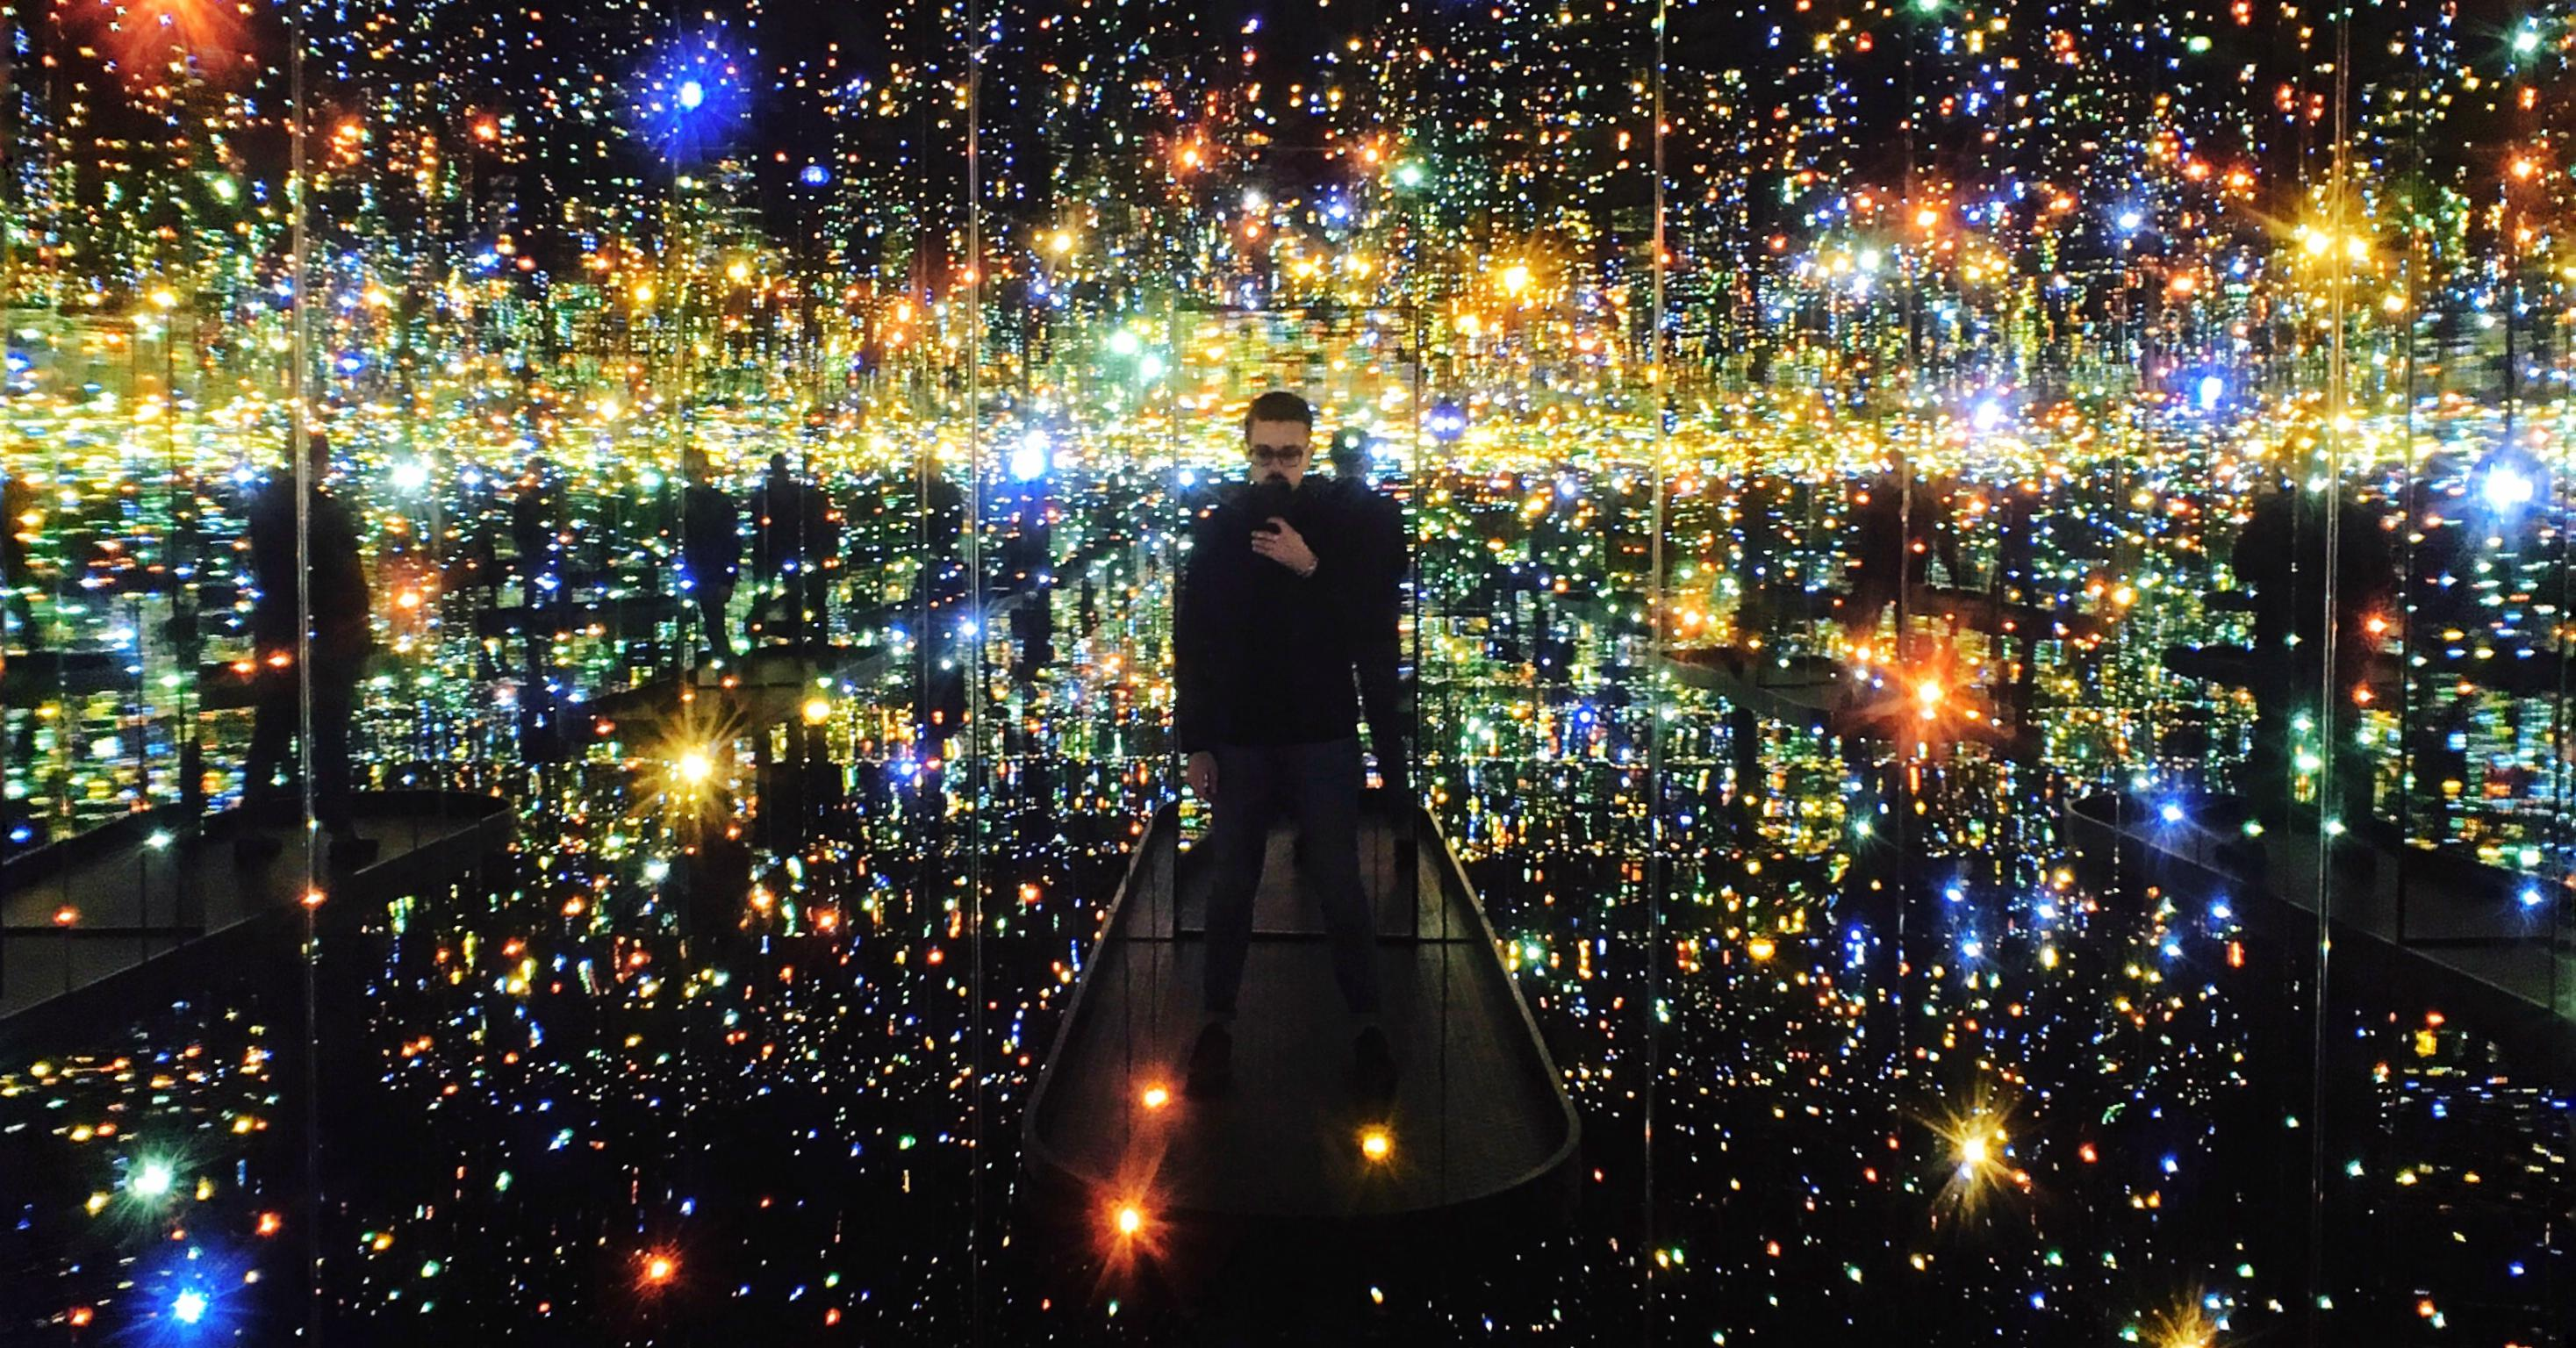 From Yayoi Kusama To Glenn Ligon 7 Artists Who Use Light